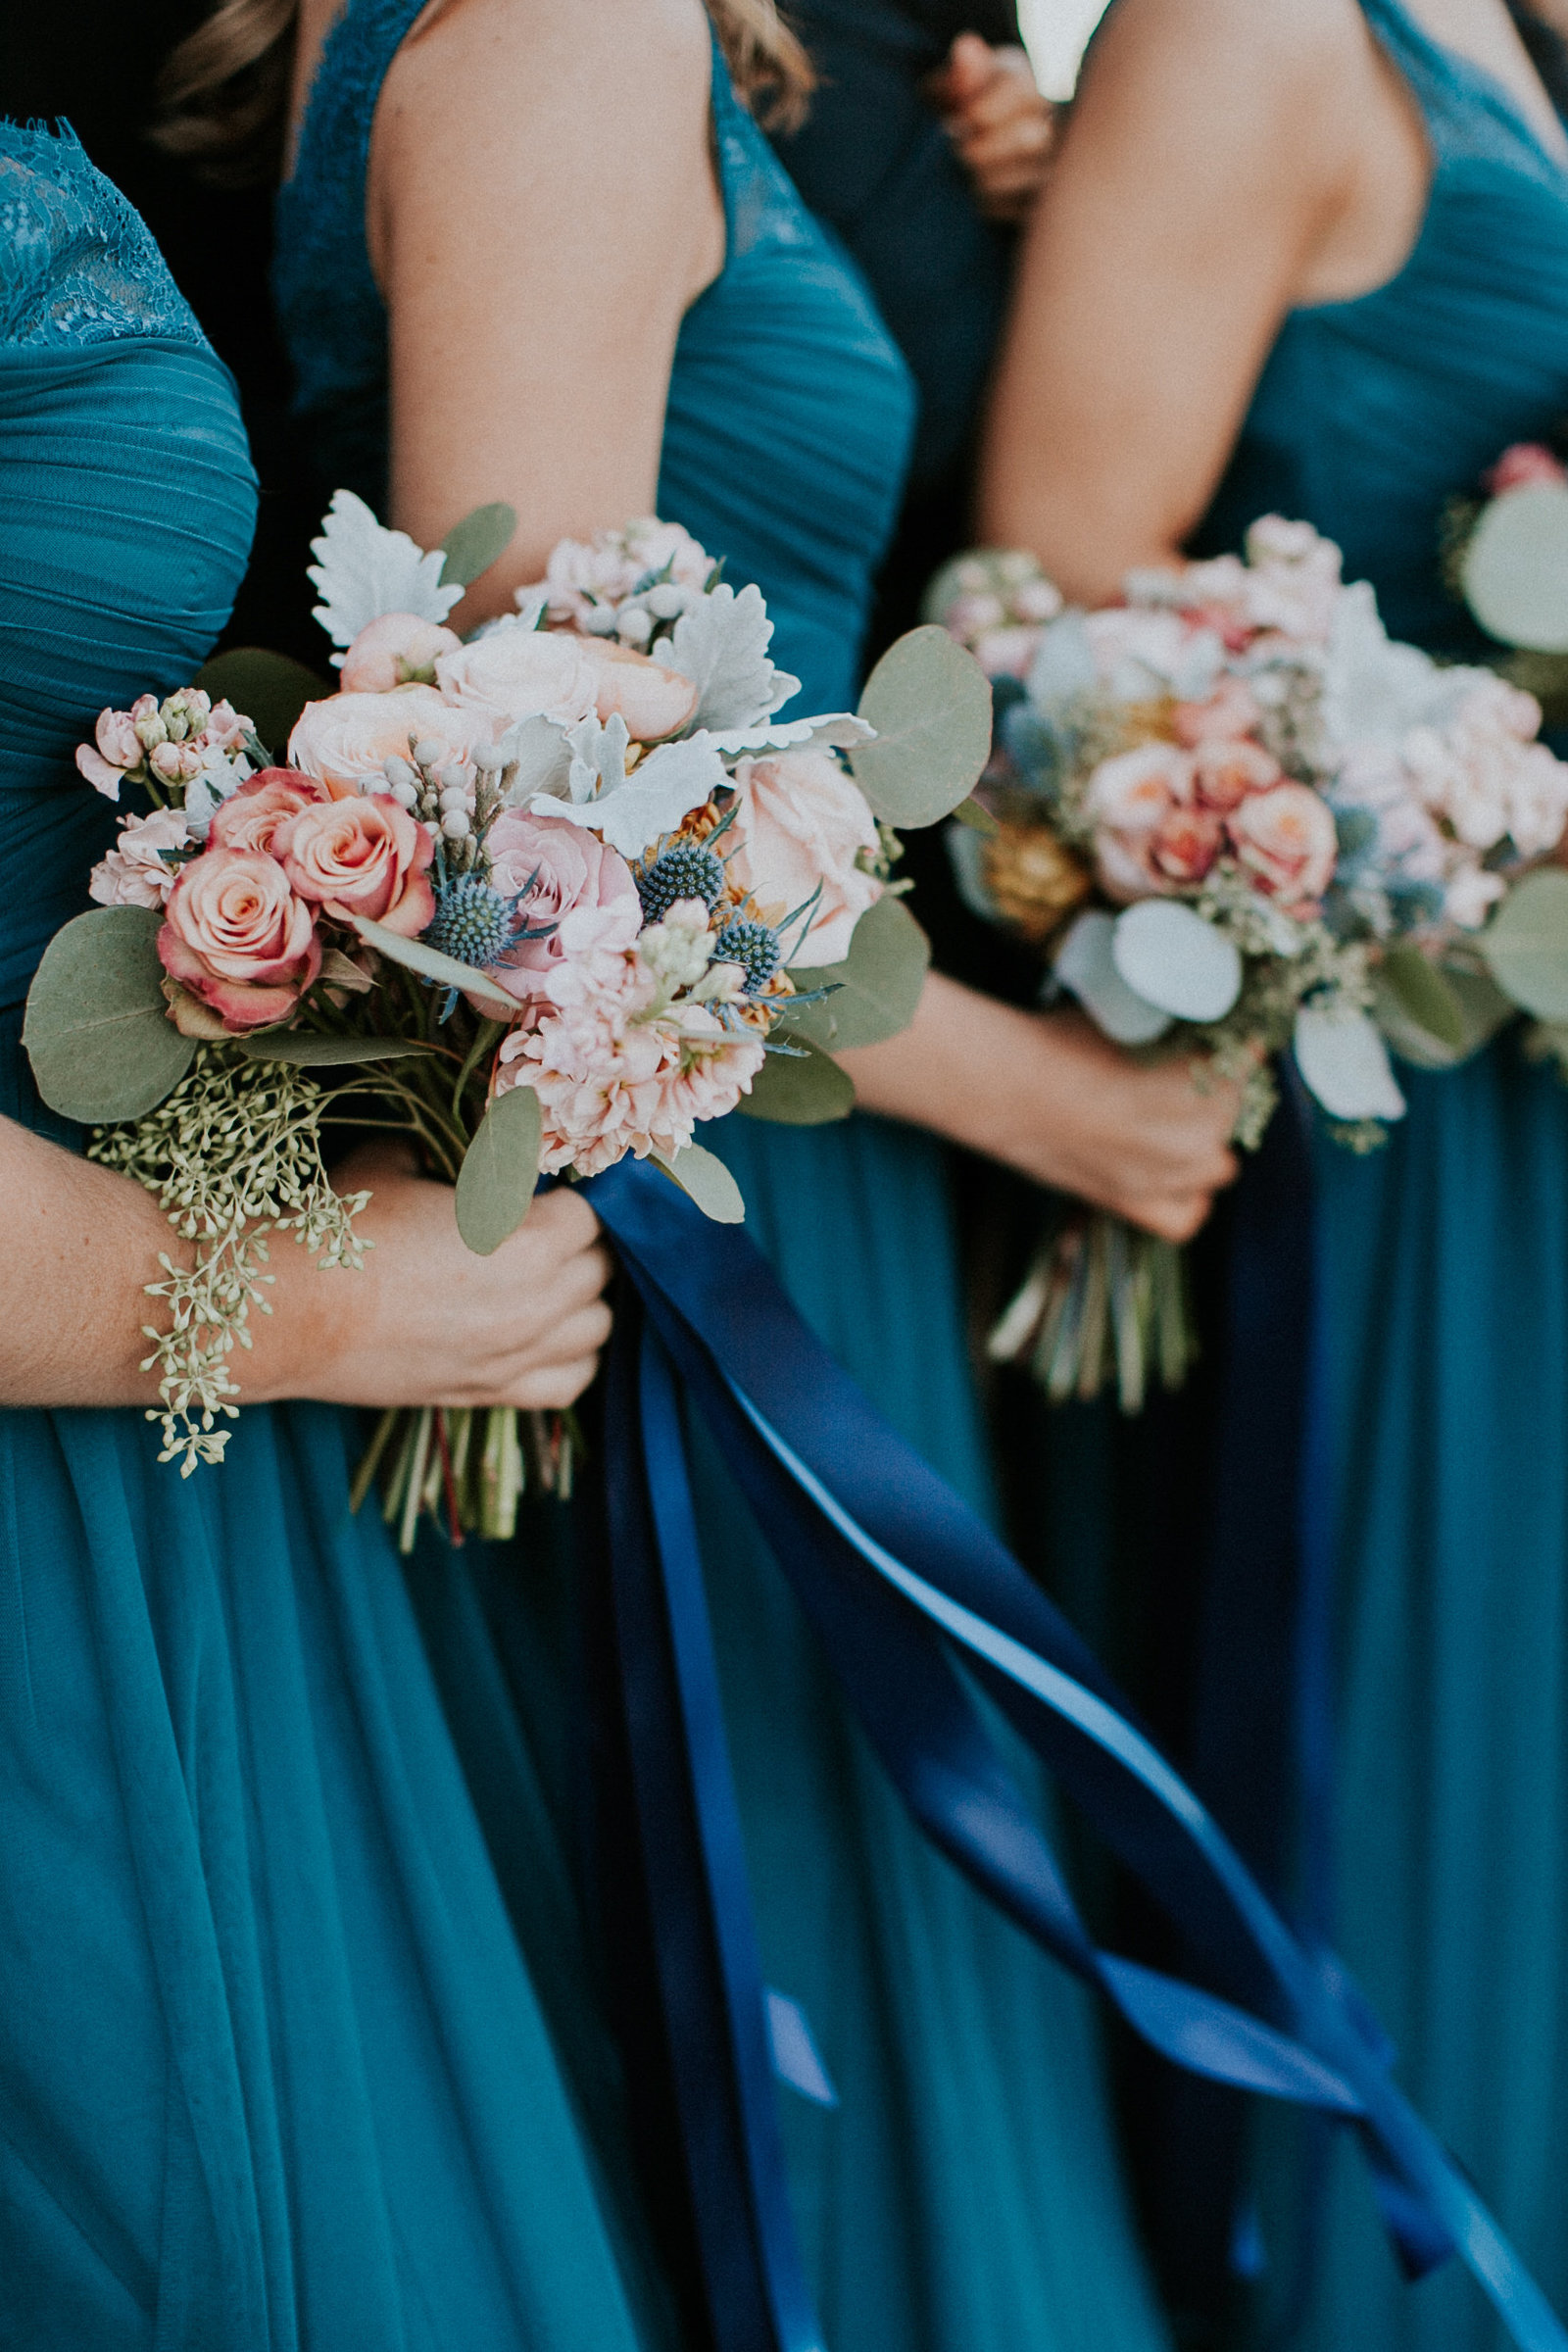 Bridal+Party+Florals+Lauren+Jones+Photography